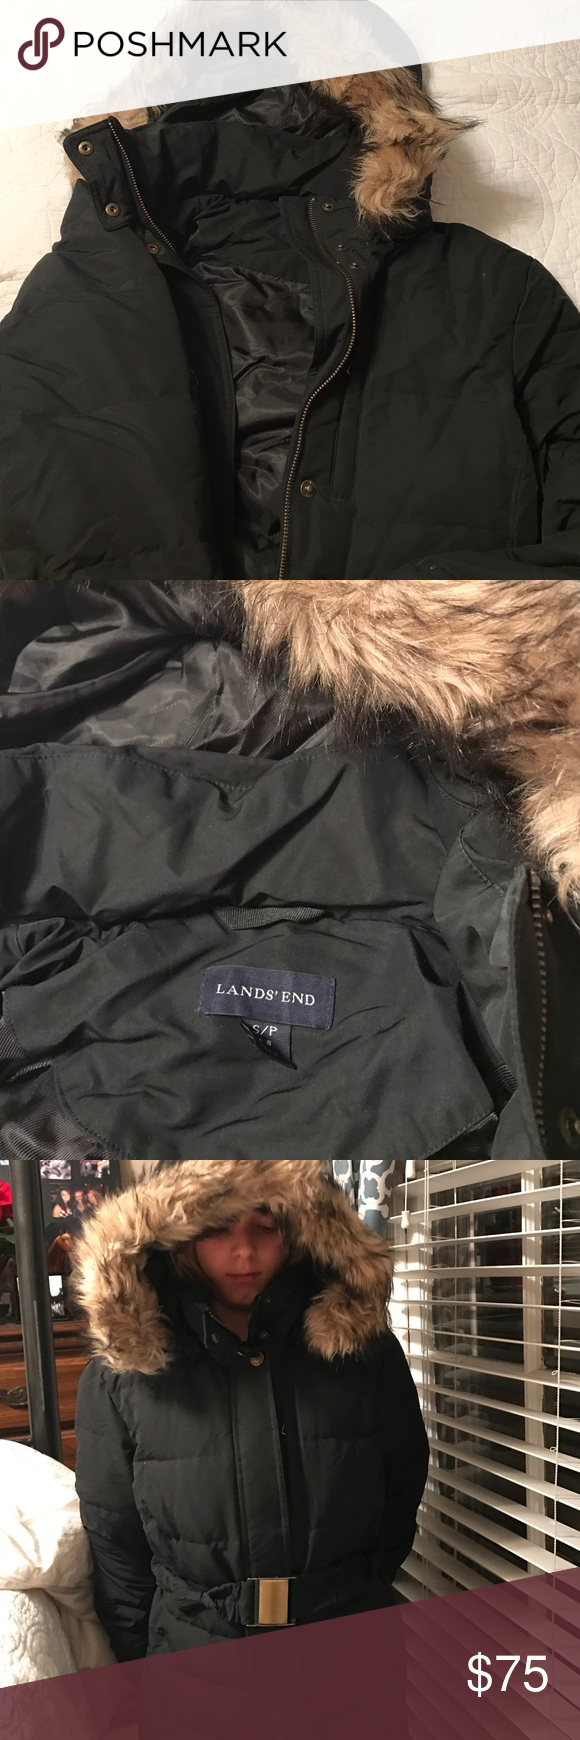 Lands end coat with hood and fake fur trim Lands end black coat with hood and fake fur trim. Size small petite lands end Jackets & Coats Puffers